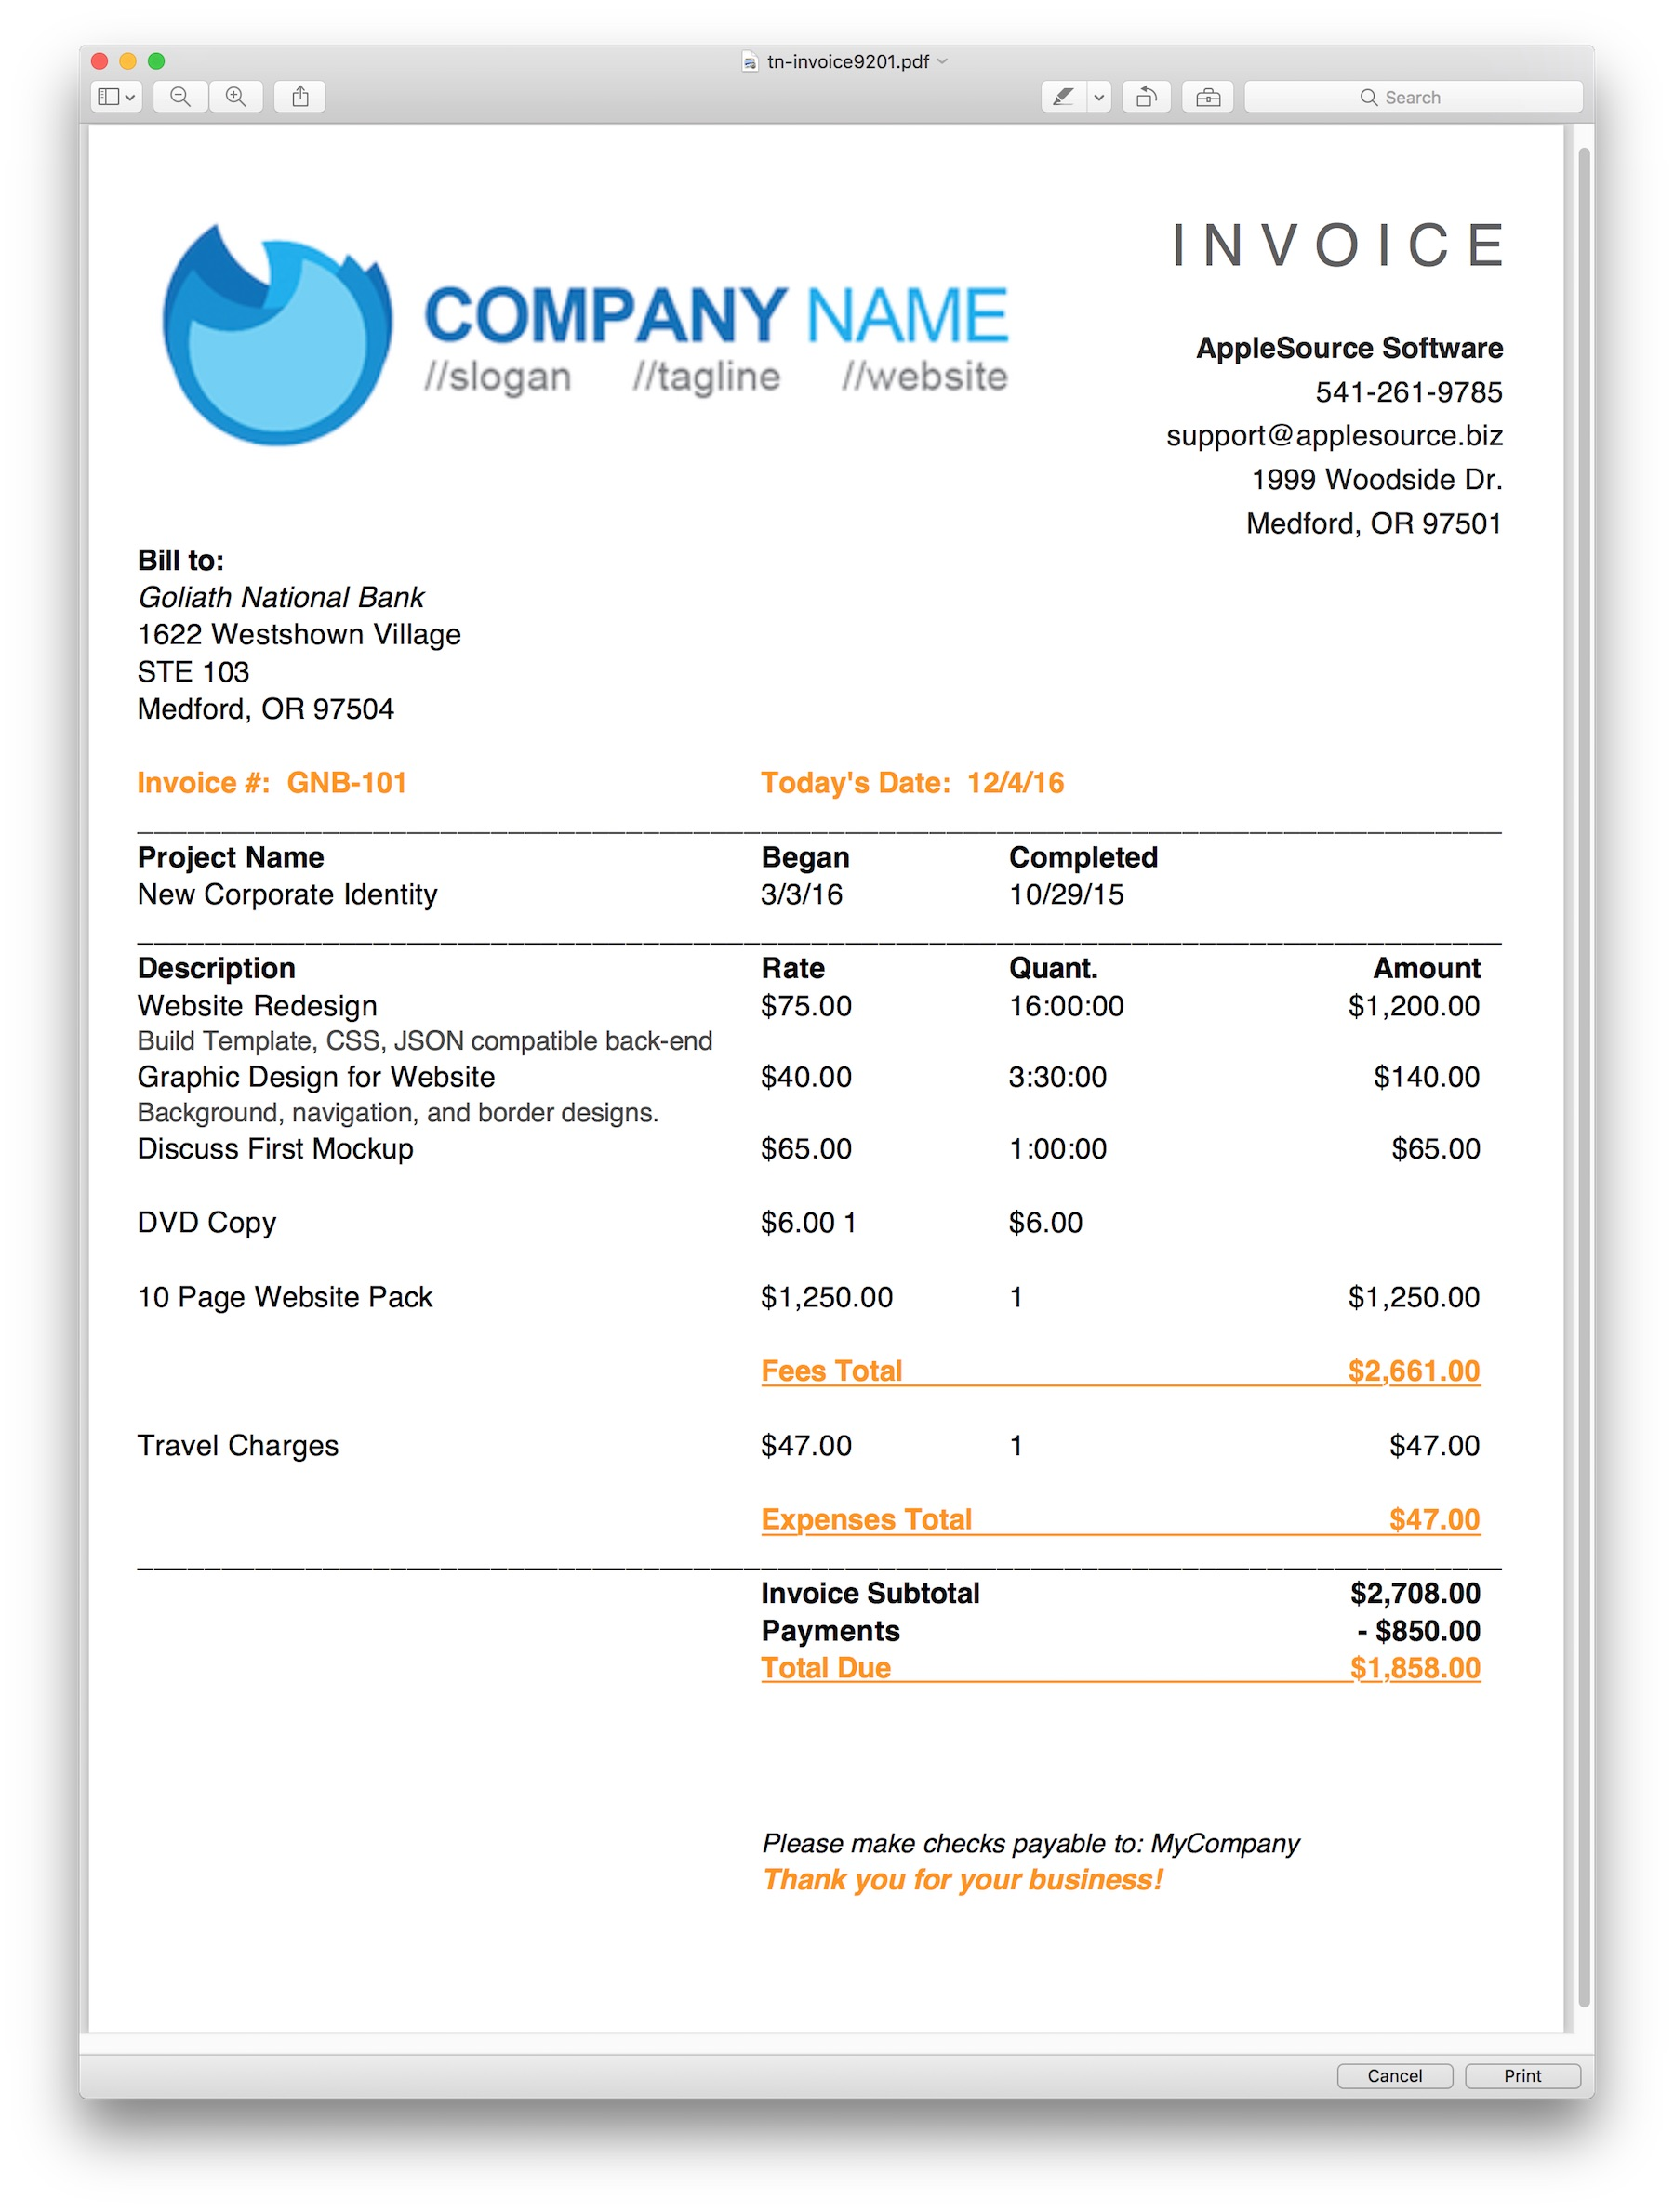 applesource software  u0026gt  timenet invoice templates